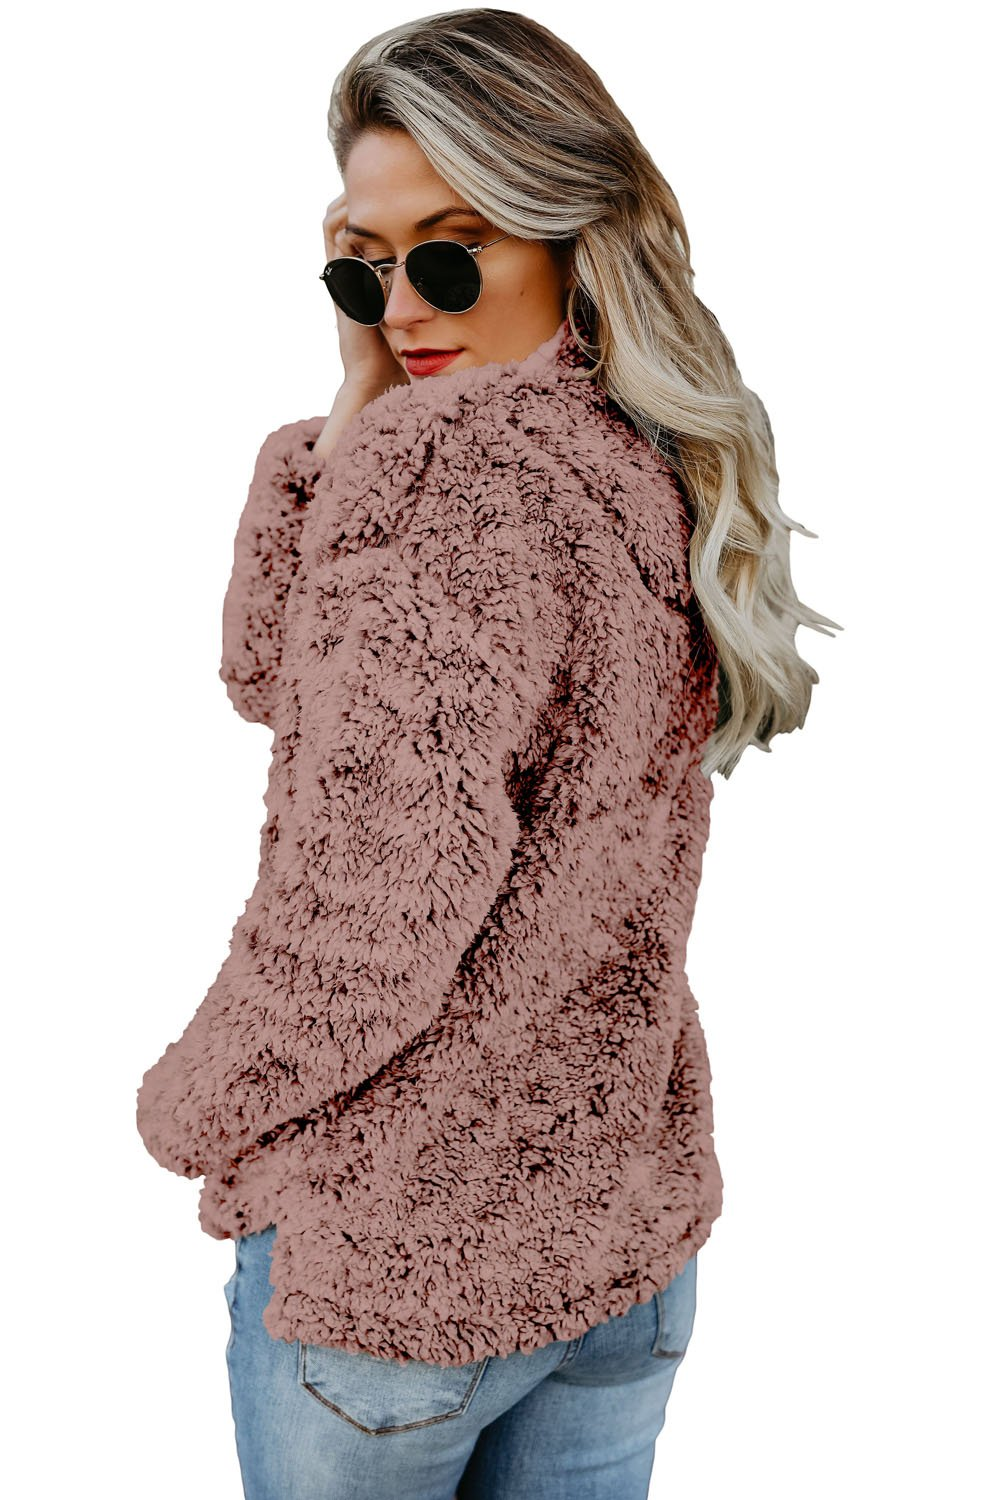 Dusty Pink Zipper Fleece Pullover Coat-Outerwear, Sweatshirts & Hoodies-Azura Exchange